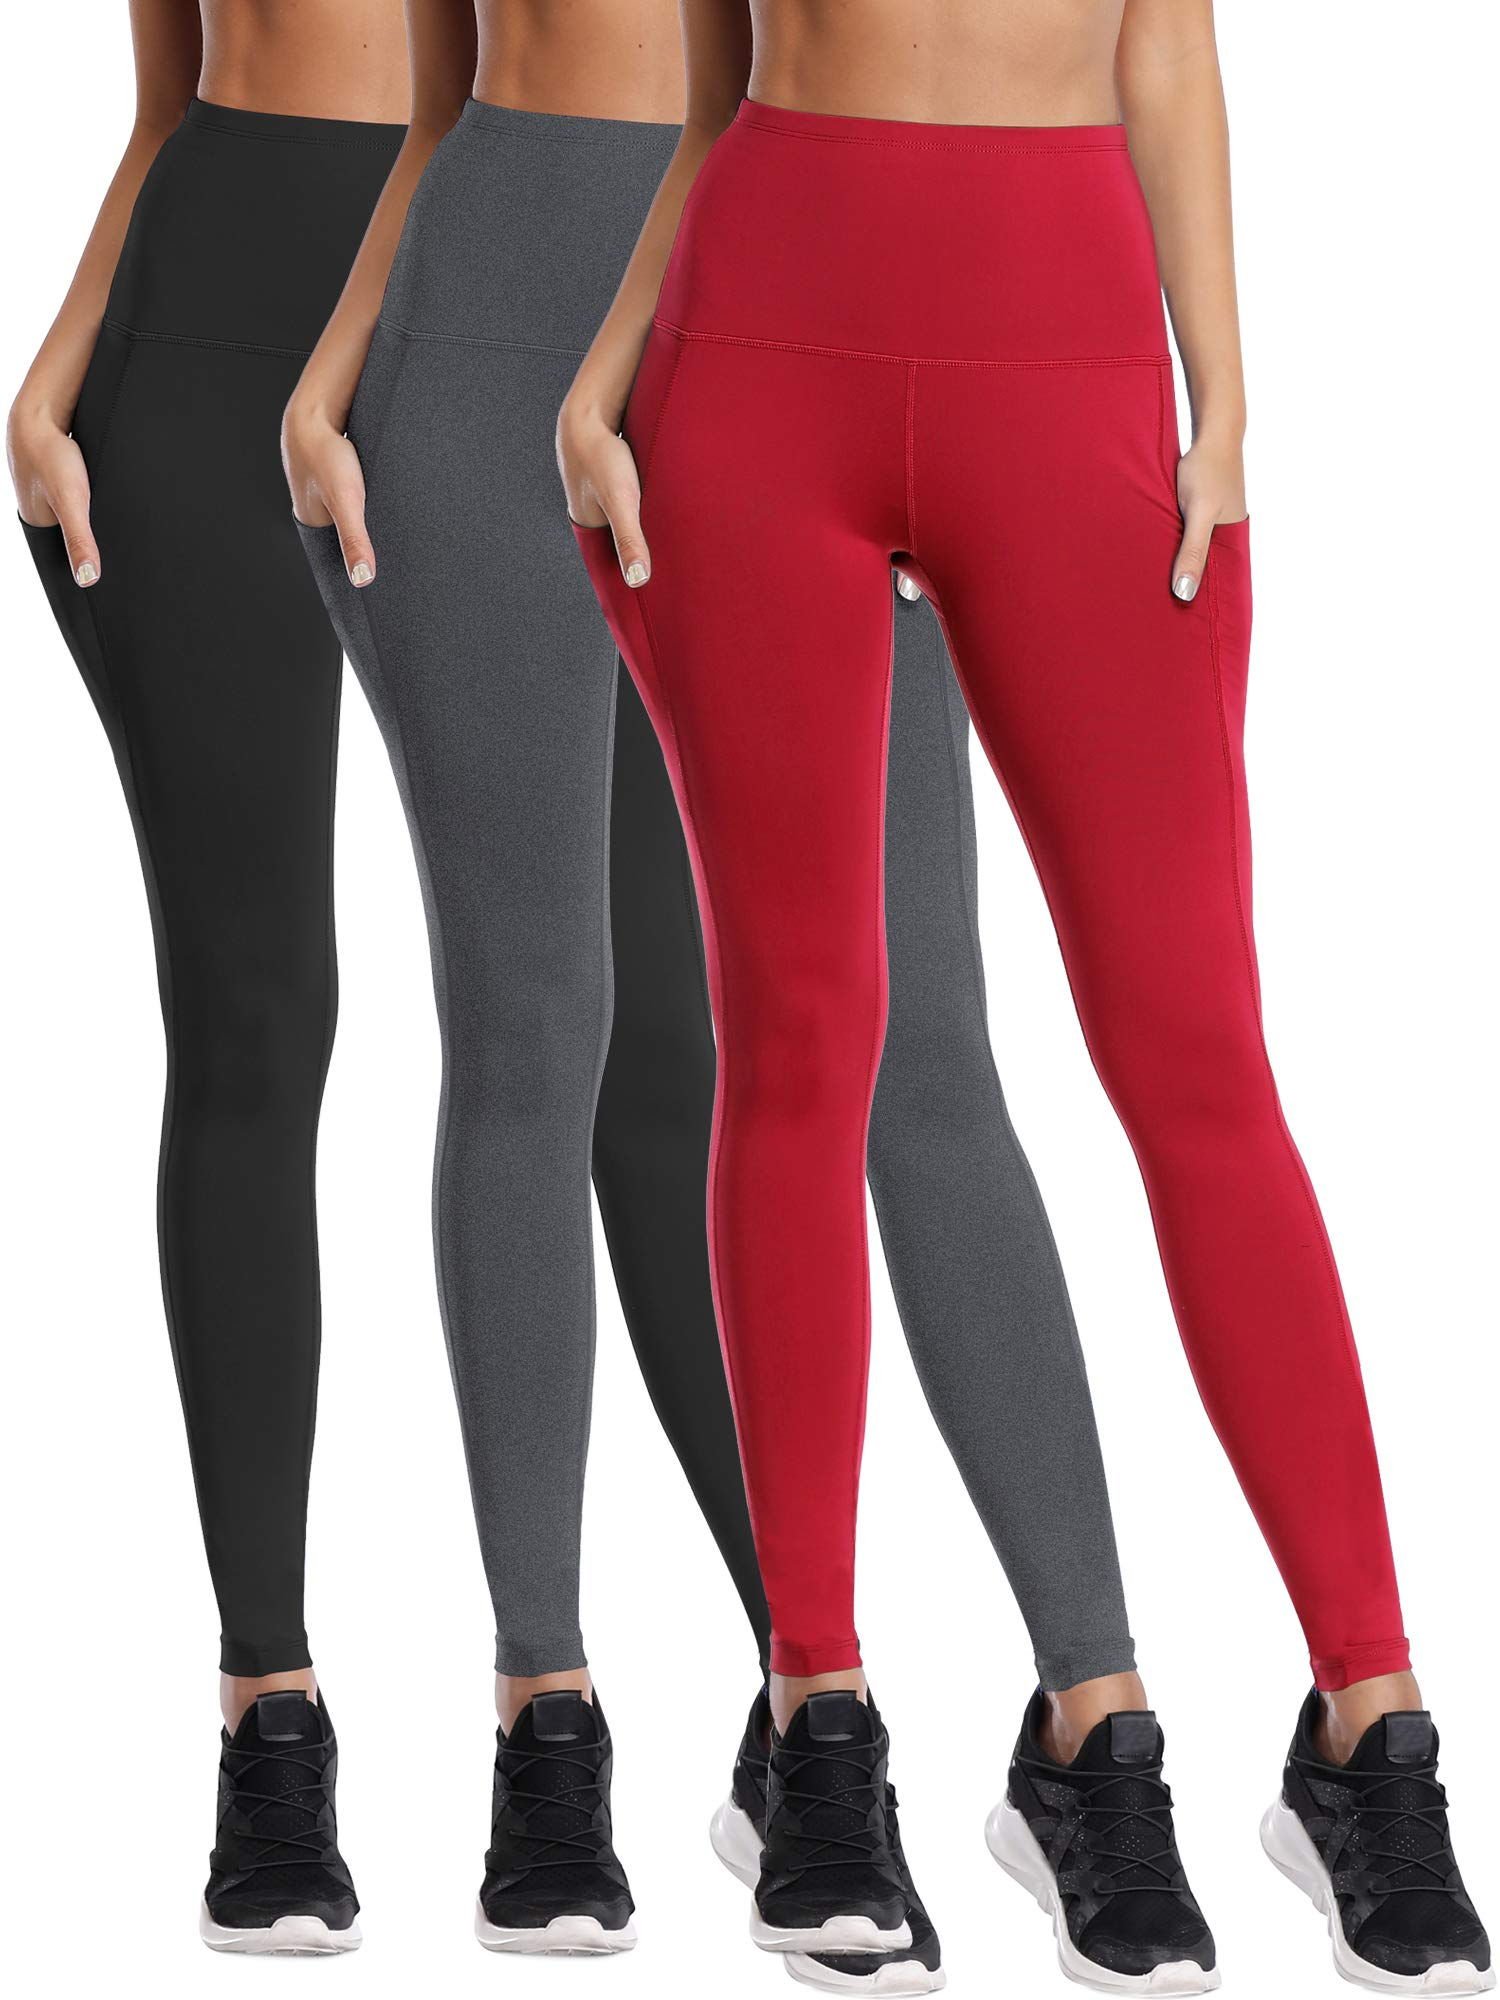 Cadmus Womens High Waist Leggings Tummy Control Running Workout Yoga Pants,1103,Black & Grey & Red,XX-Large by Cadmus